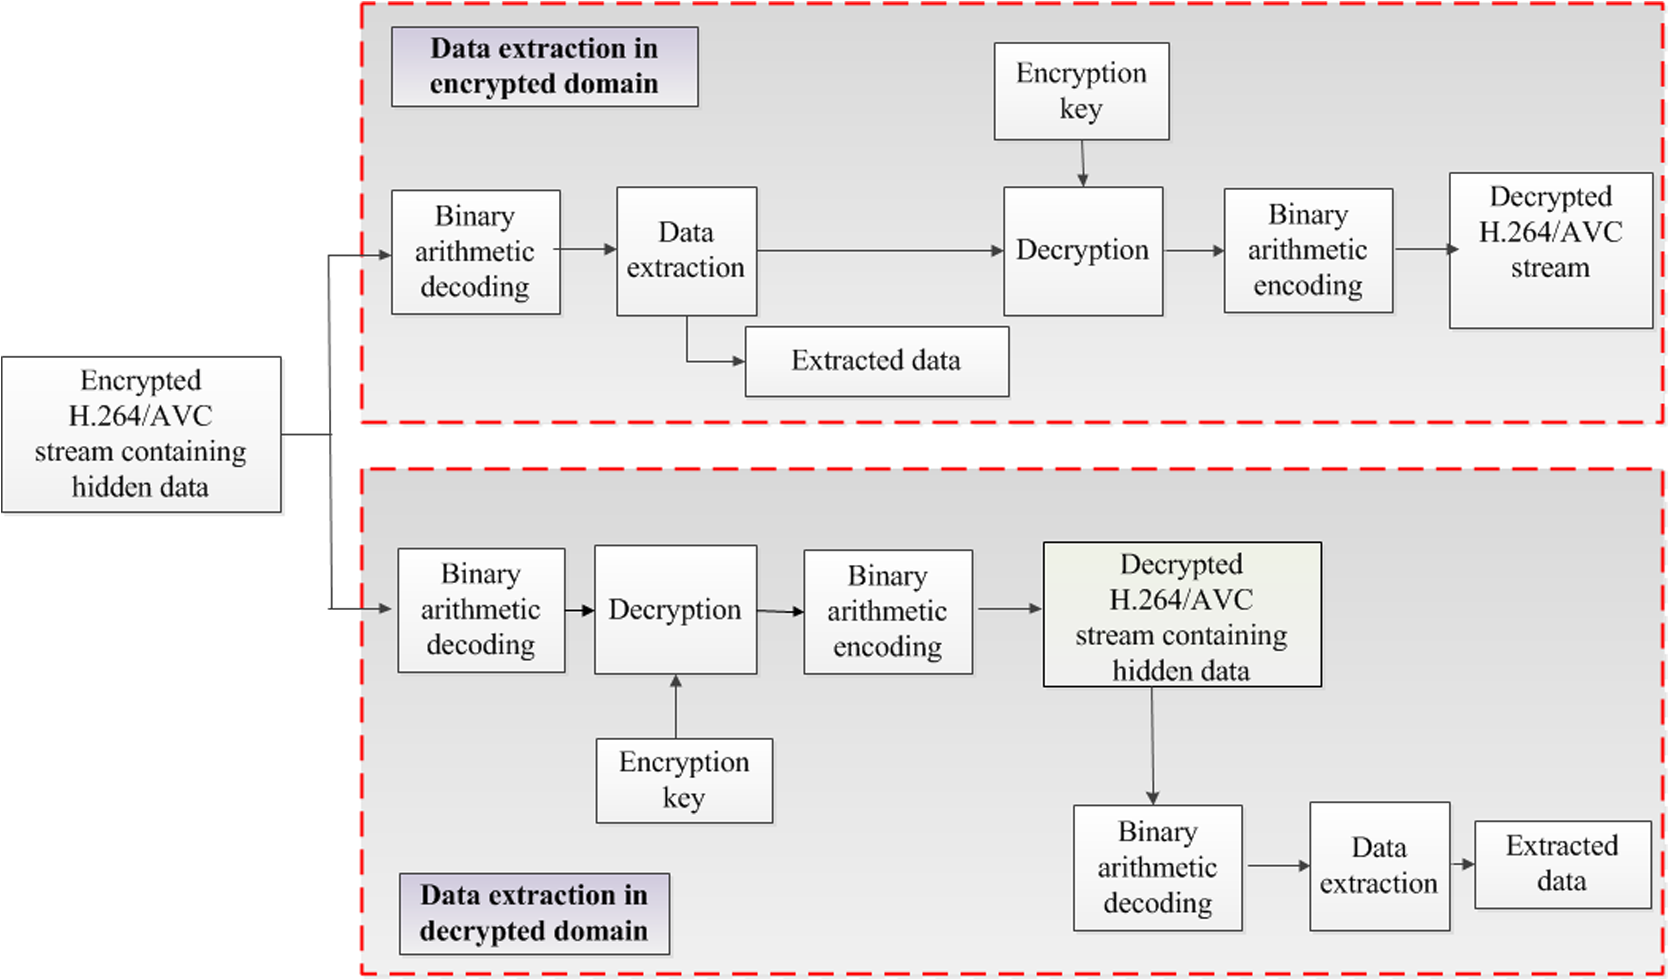 Context Adaptive Binary Arithmetic Coding Based Data Hiding In H 264 Block Diagram Of Extraction Encrypted Or Decrypted Domain